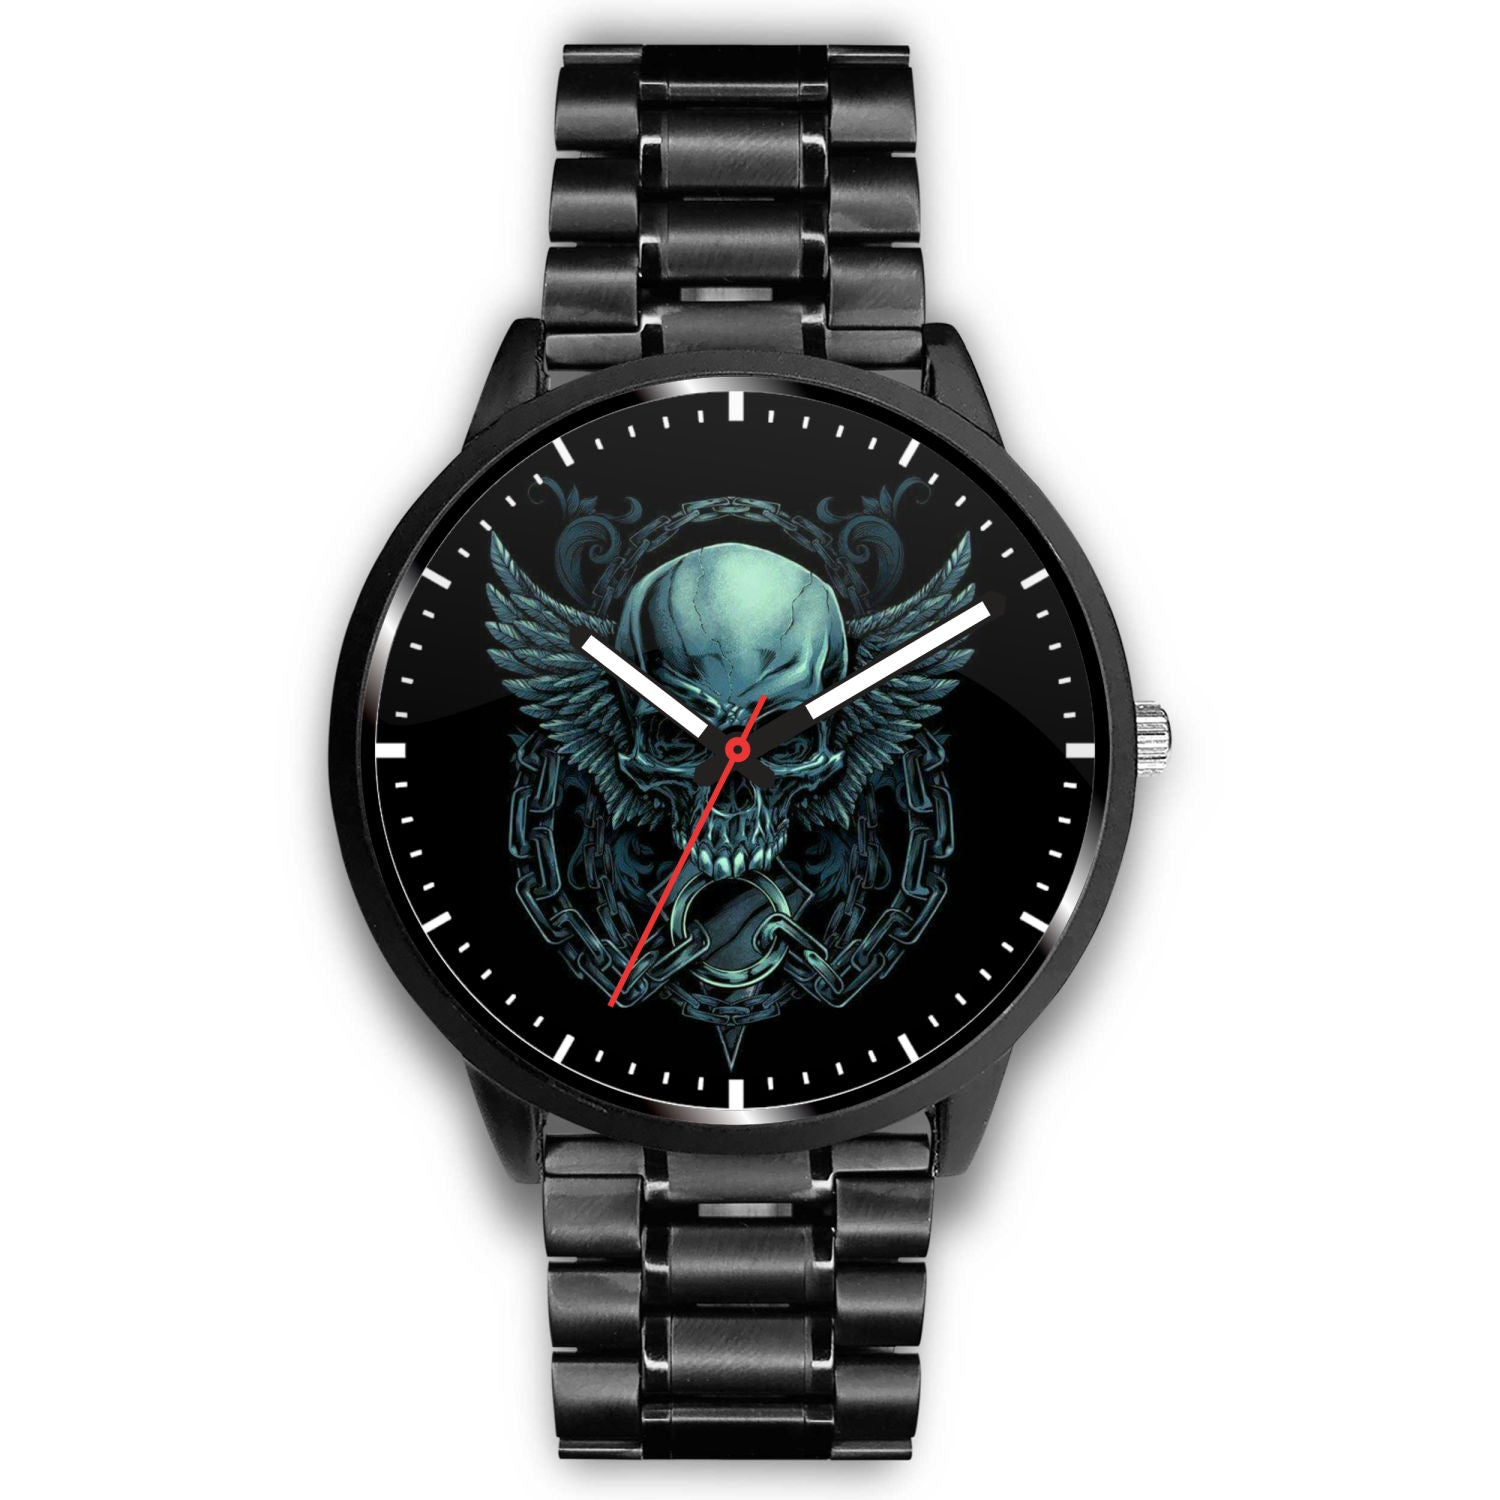 Skull Watch - Stainless steel back with leather/ stainless steel band 007 - designfullprint